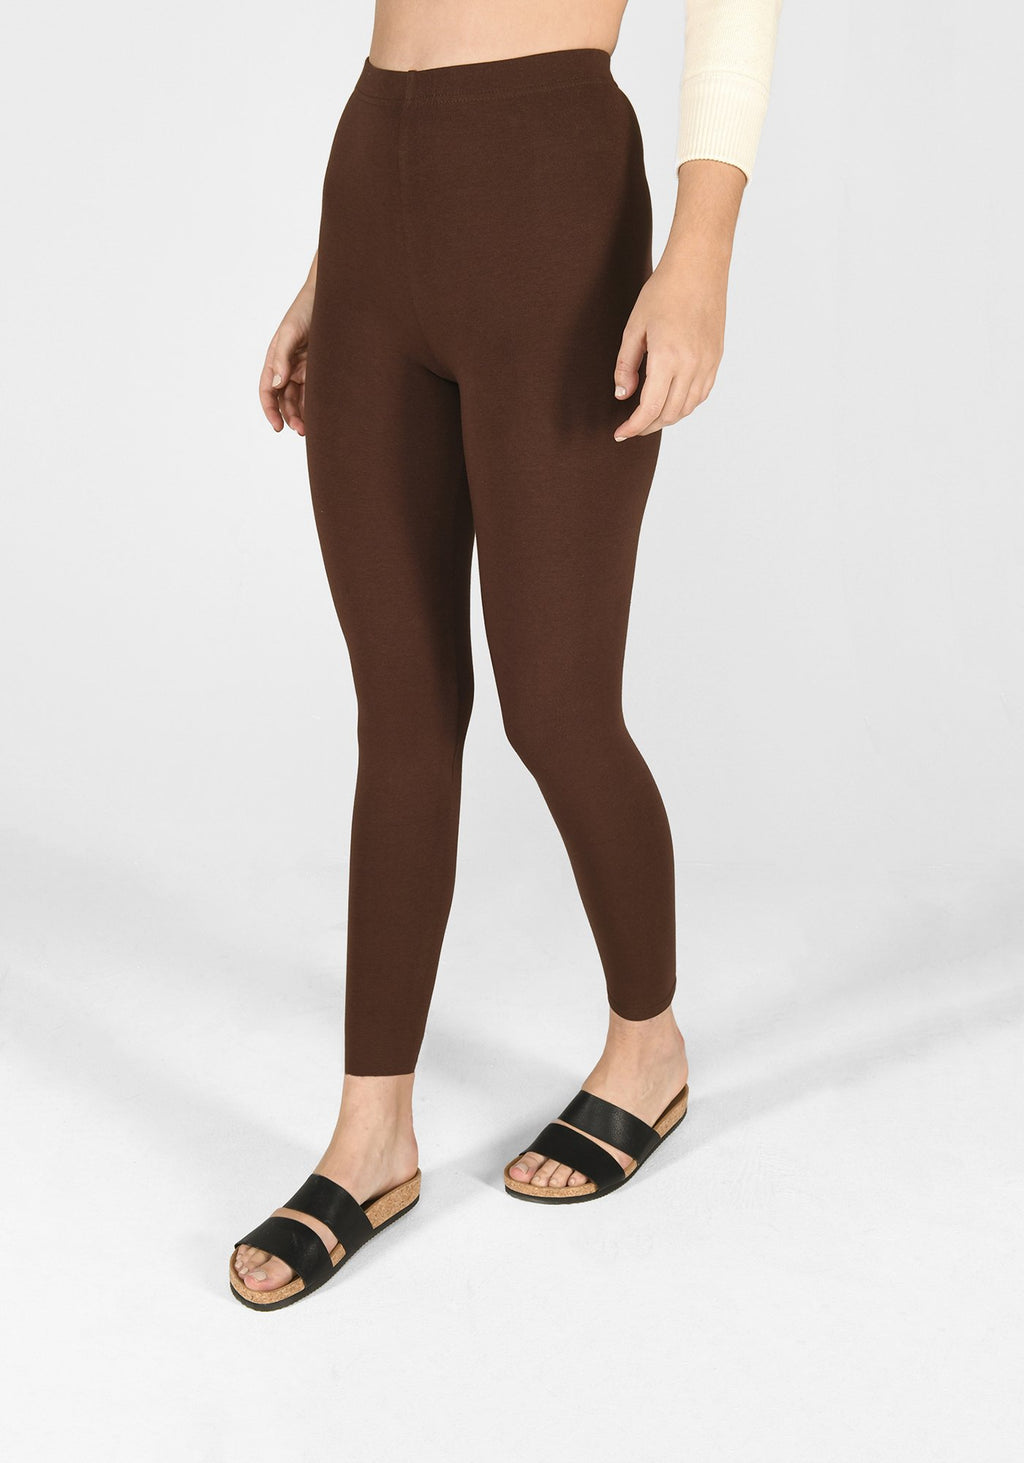 chocolate brown classic leggings 1